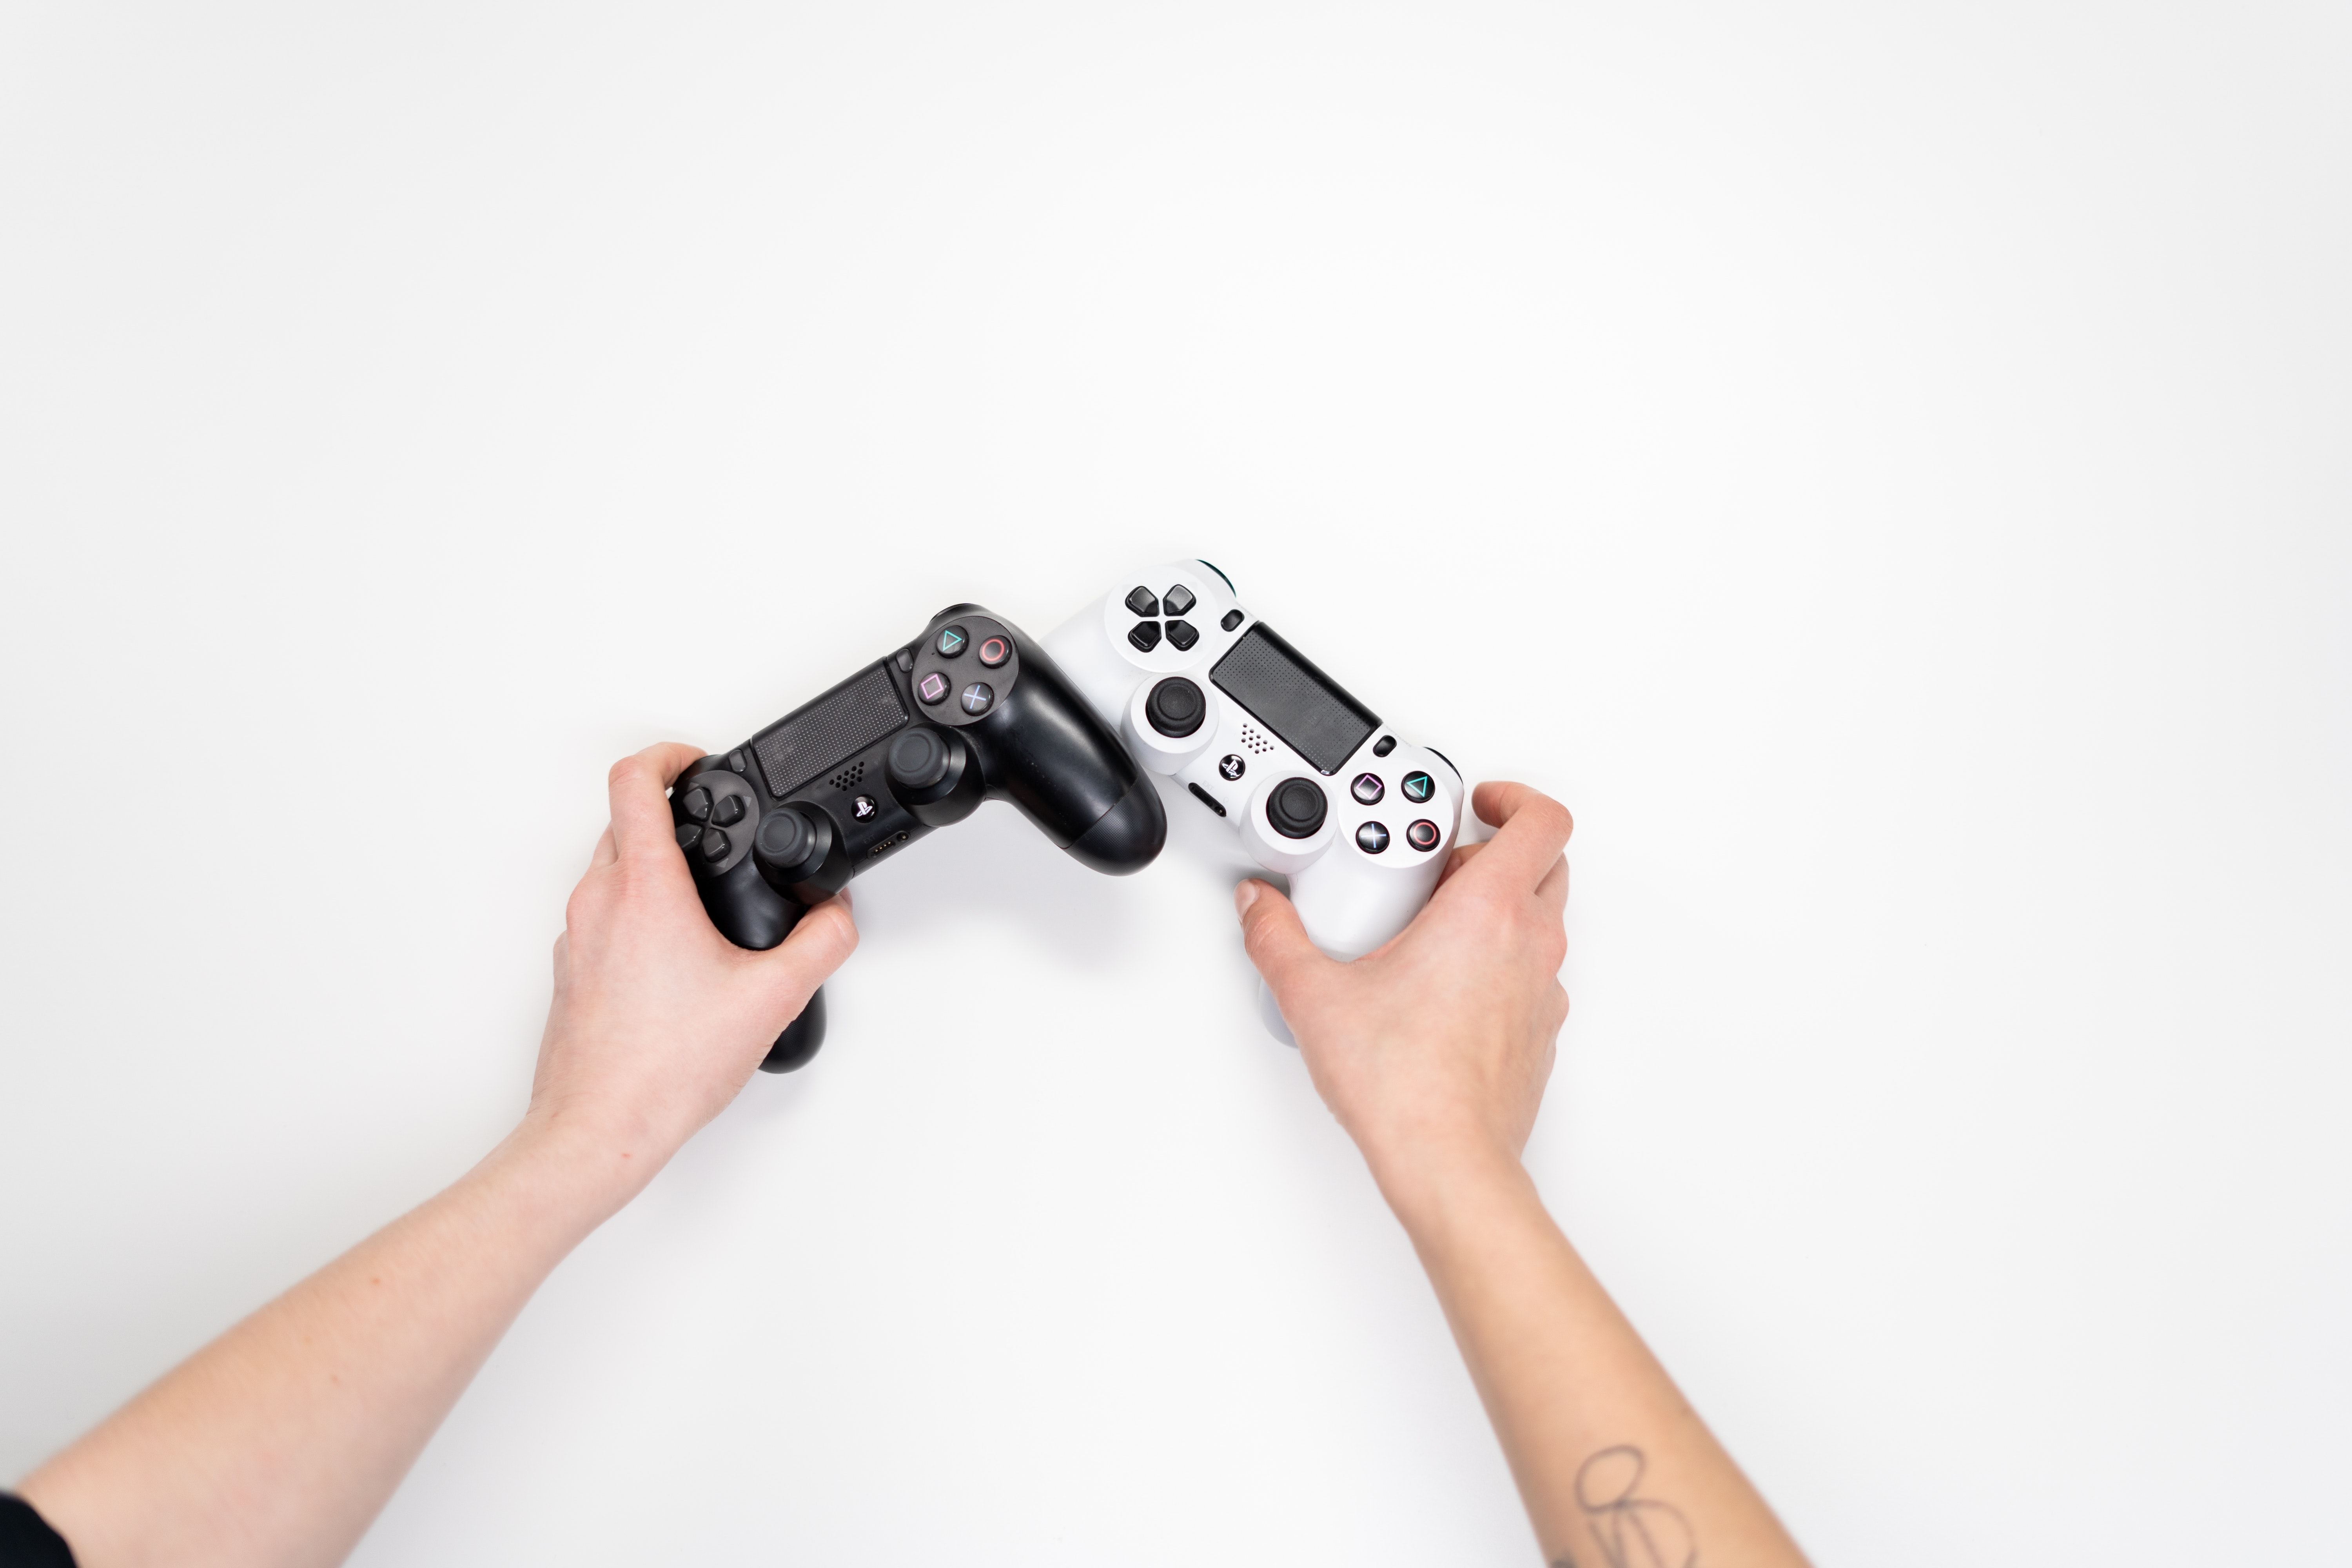 6 Strategies to Build Hype for Your Upcoming Game Launch